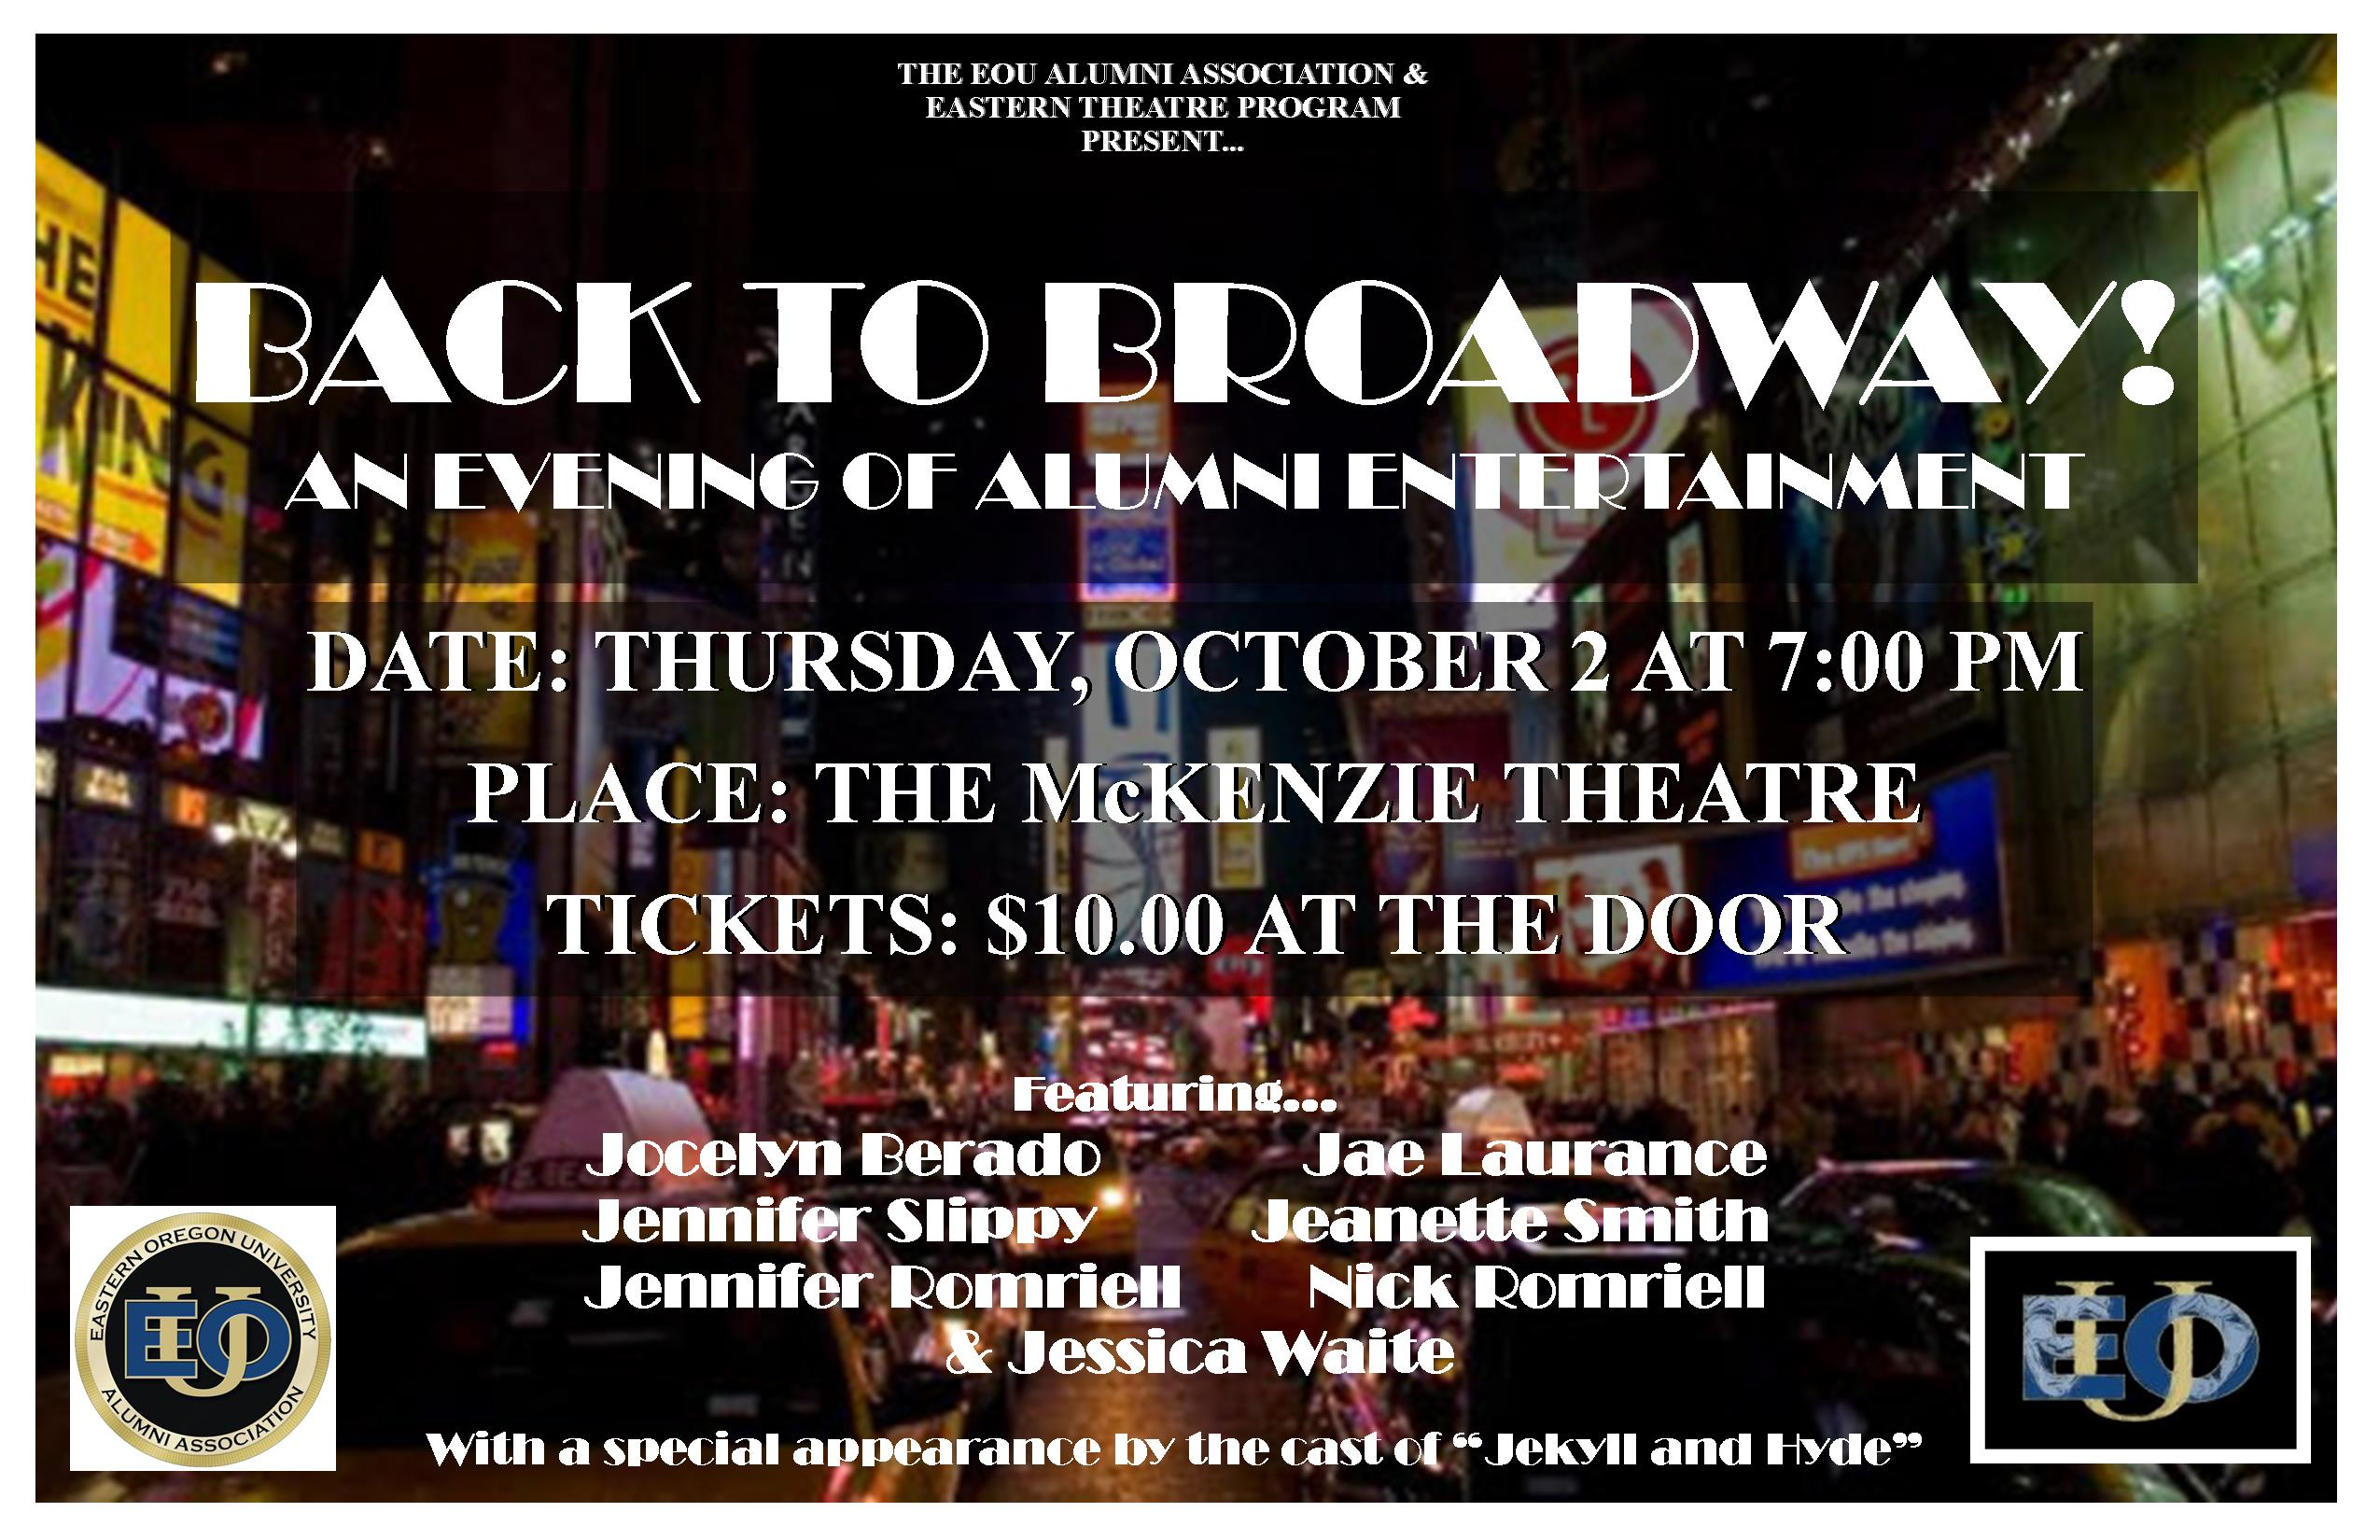 BACK TO BROADWAY POSTER